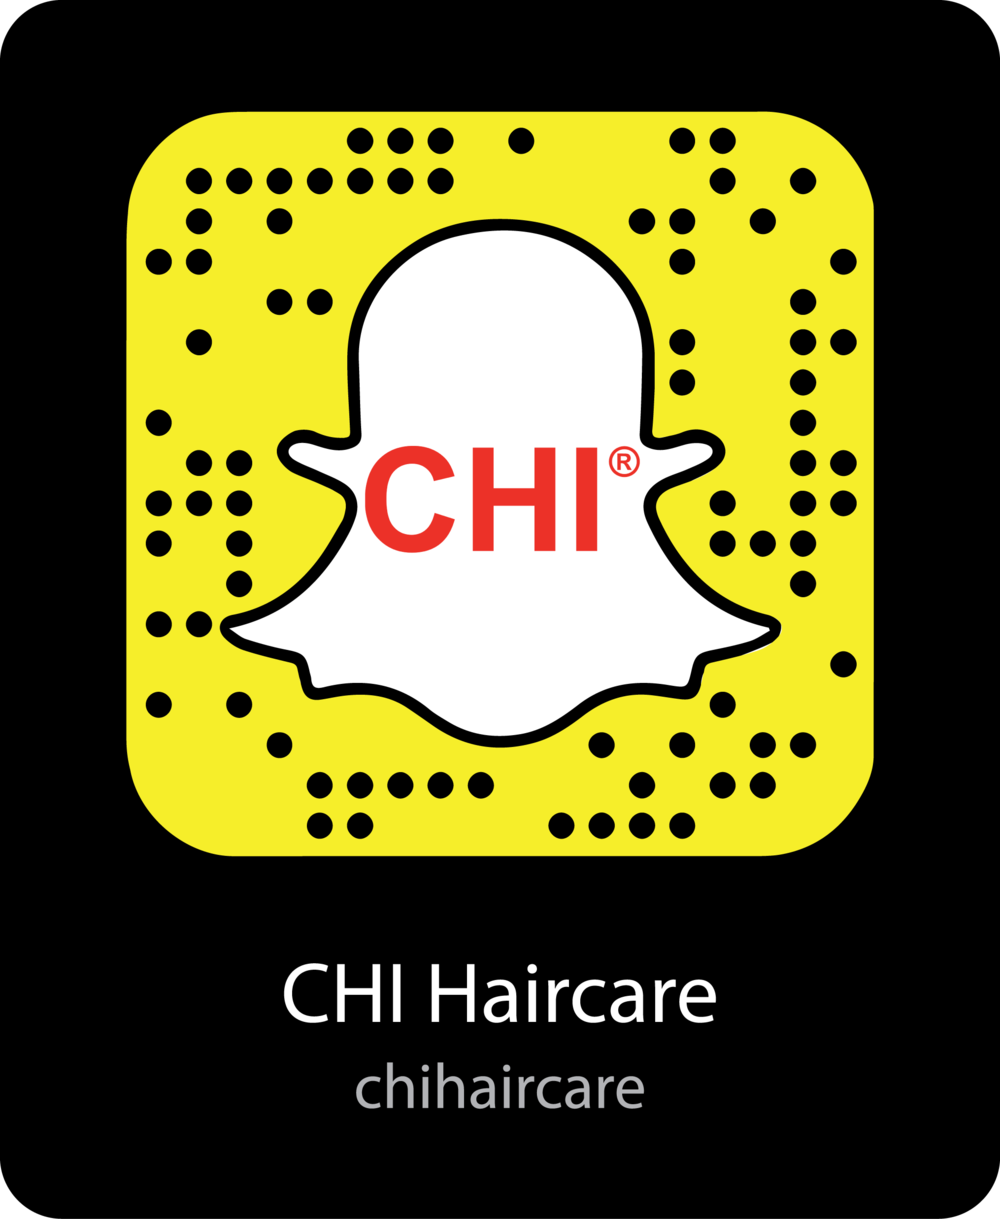 chihaircare-Brands-snapchat-snapcode.png